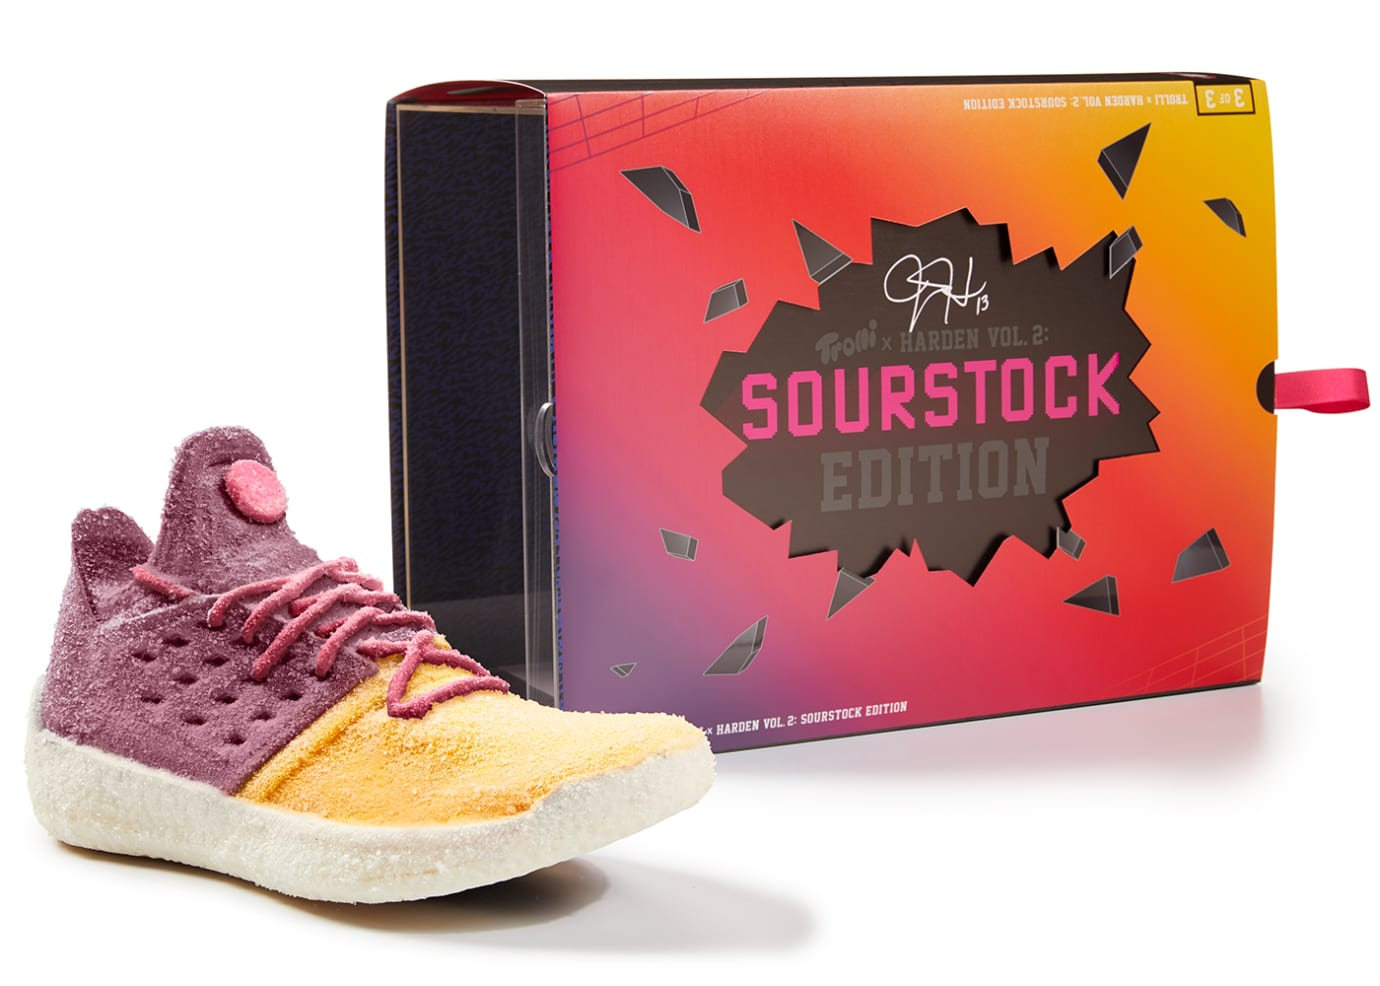 James Harden Vol 2 Trolli Sourstock